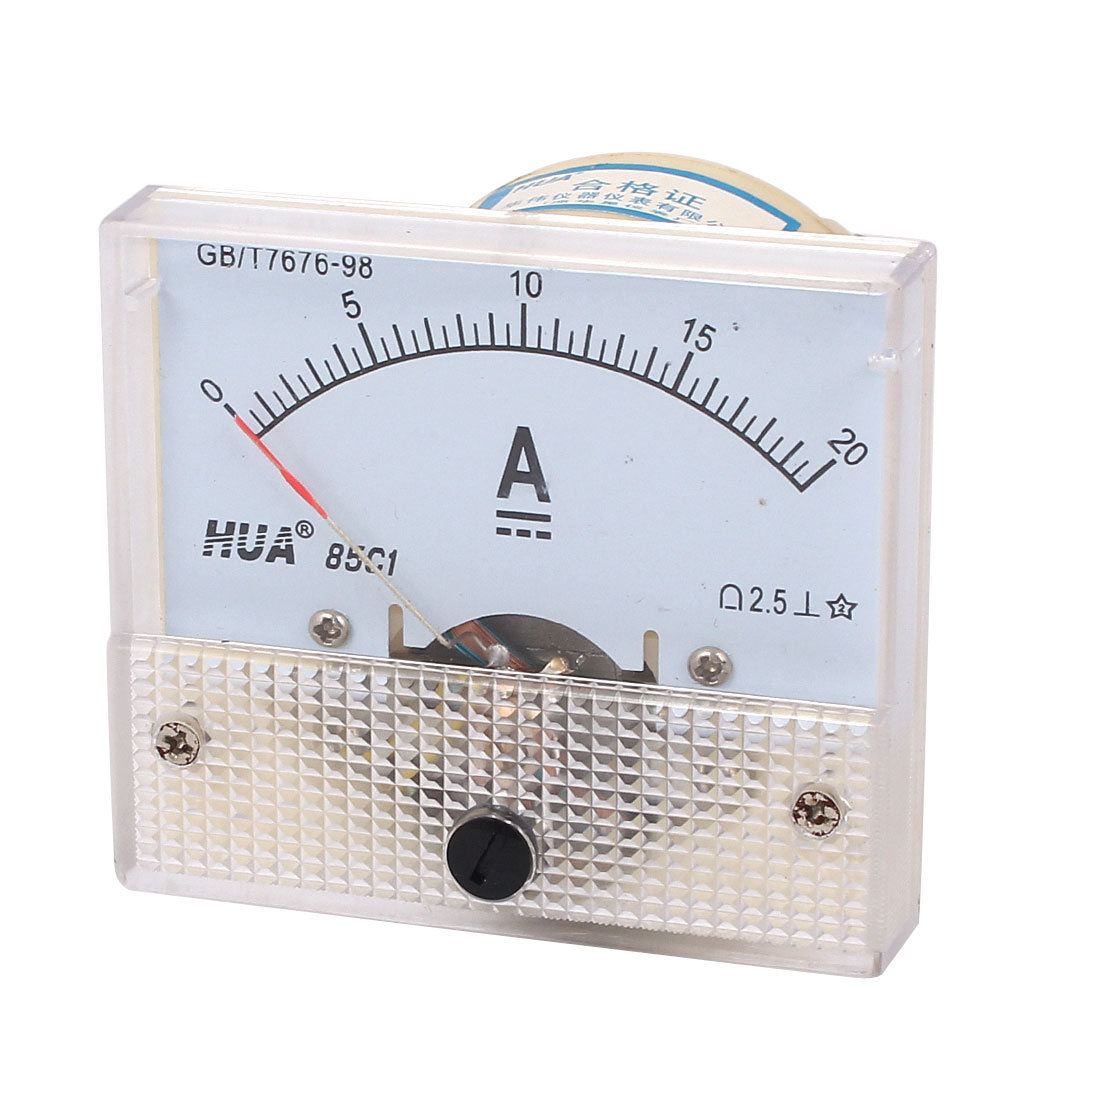 DC 20A Ampere Meter Current Analog Panel Meter Ammeter Gauge 0-20A Class 2.5 White